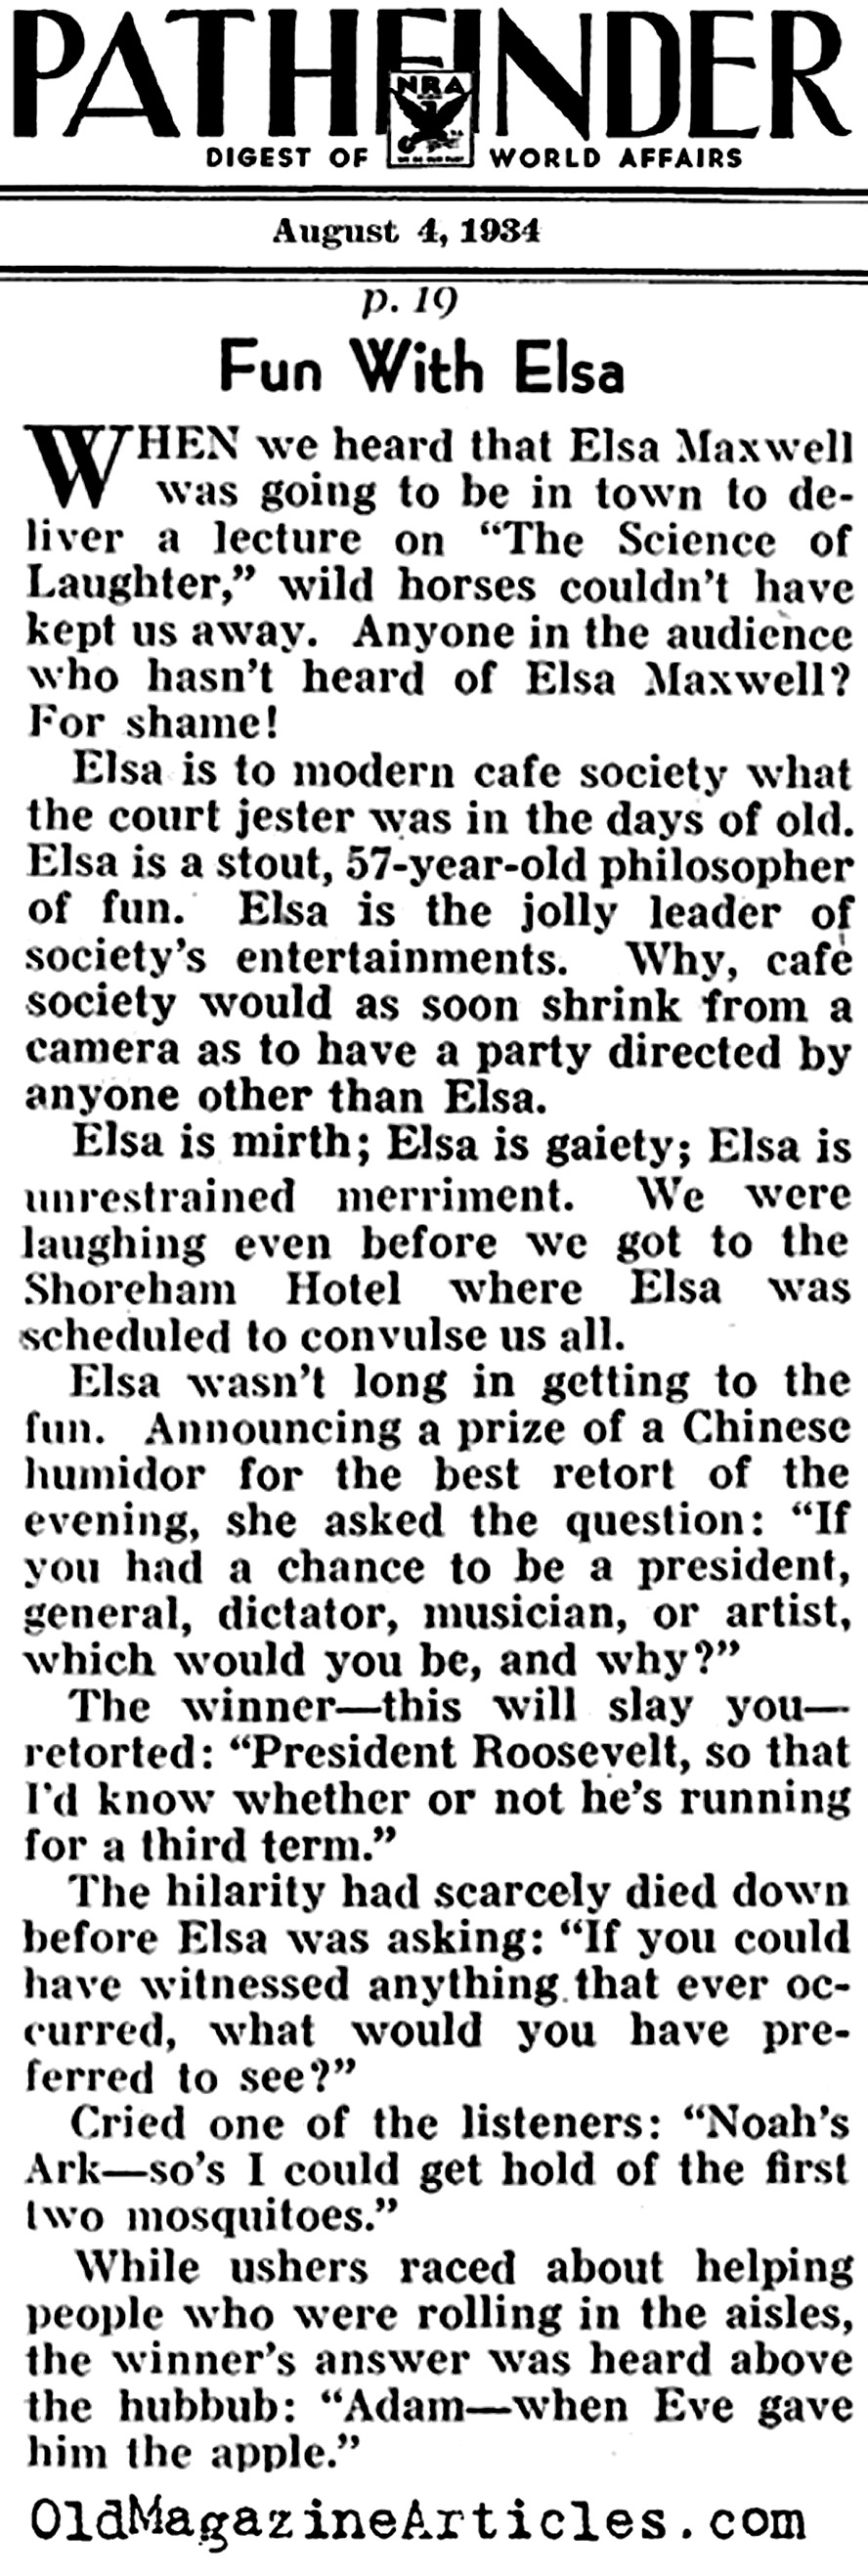 Elsa Maxwell: Life of the Party (Pathfinder Magazine, 1940)